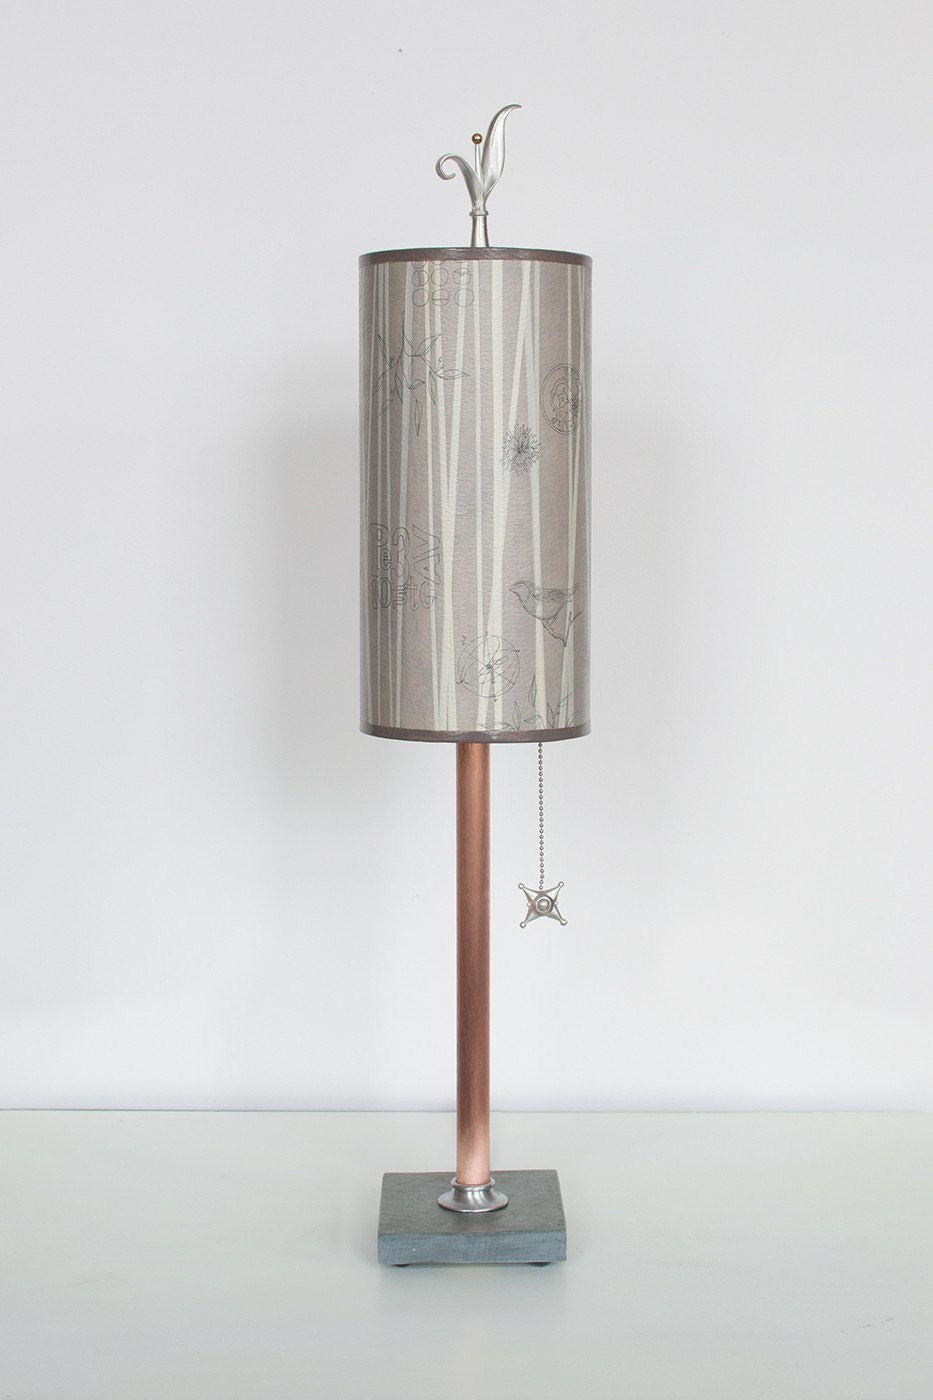 Copper Table Lamp on Vermont Slate with Small Tube Shade in Birch